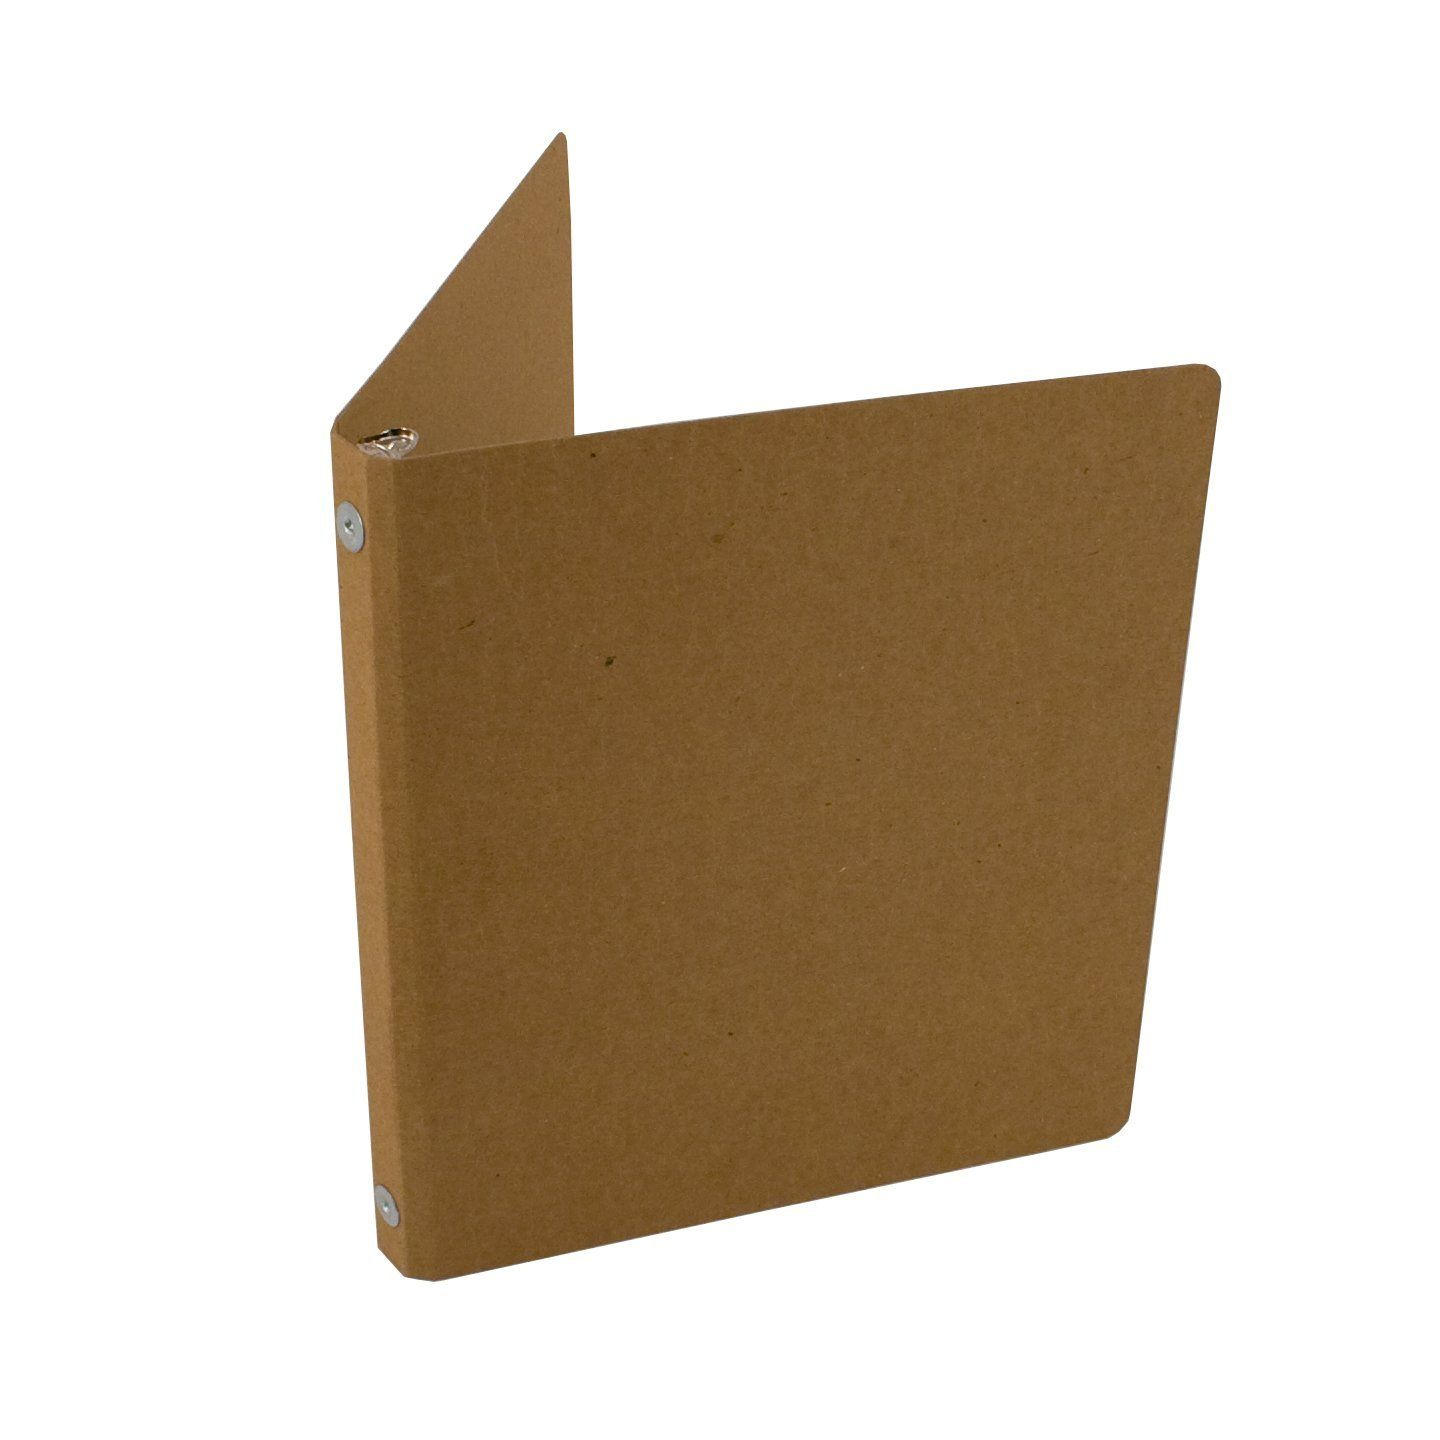 Amazon.com : Guided Products ReBinder Select Recycled